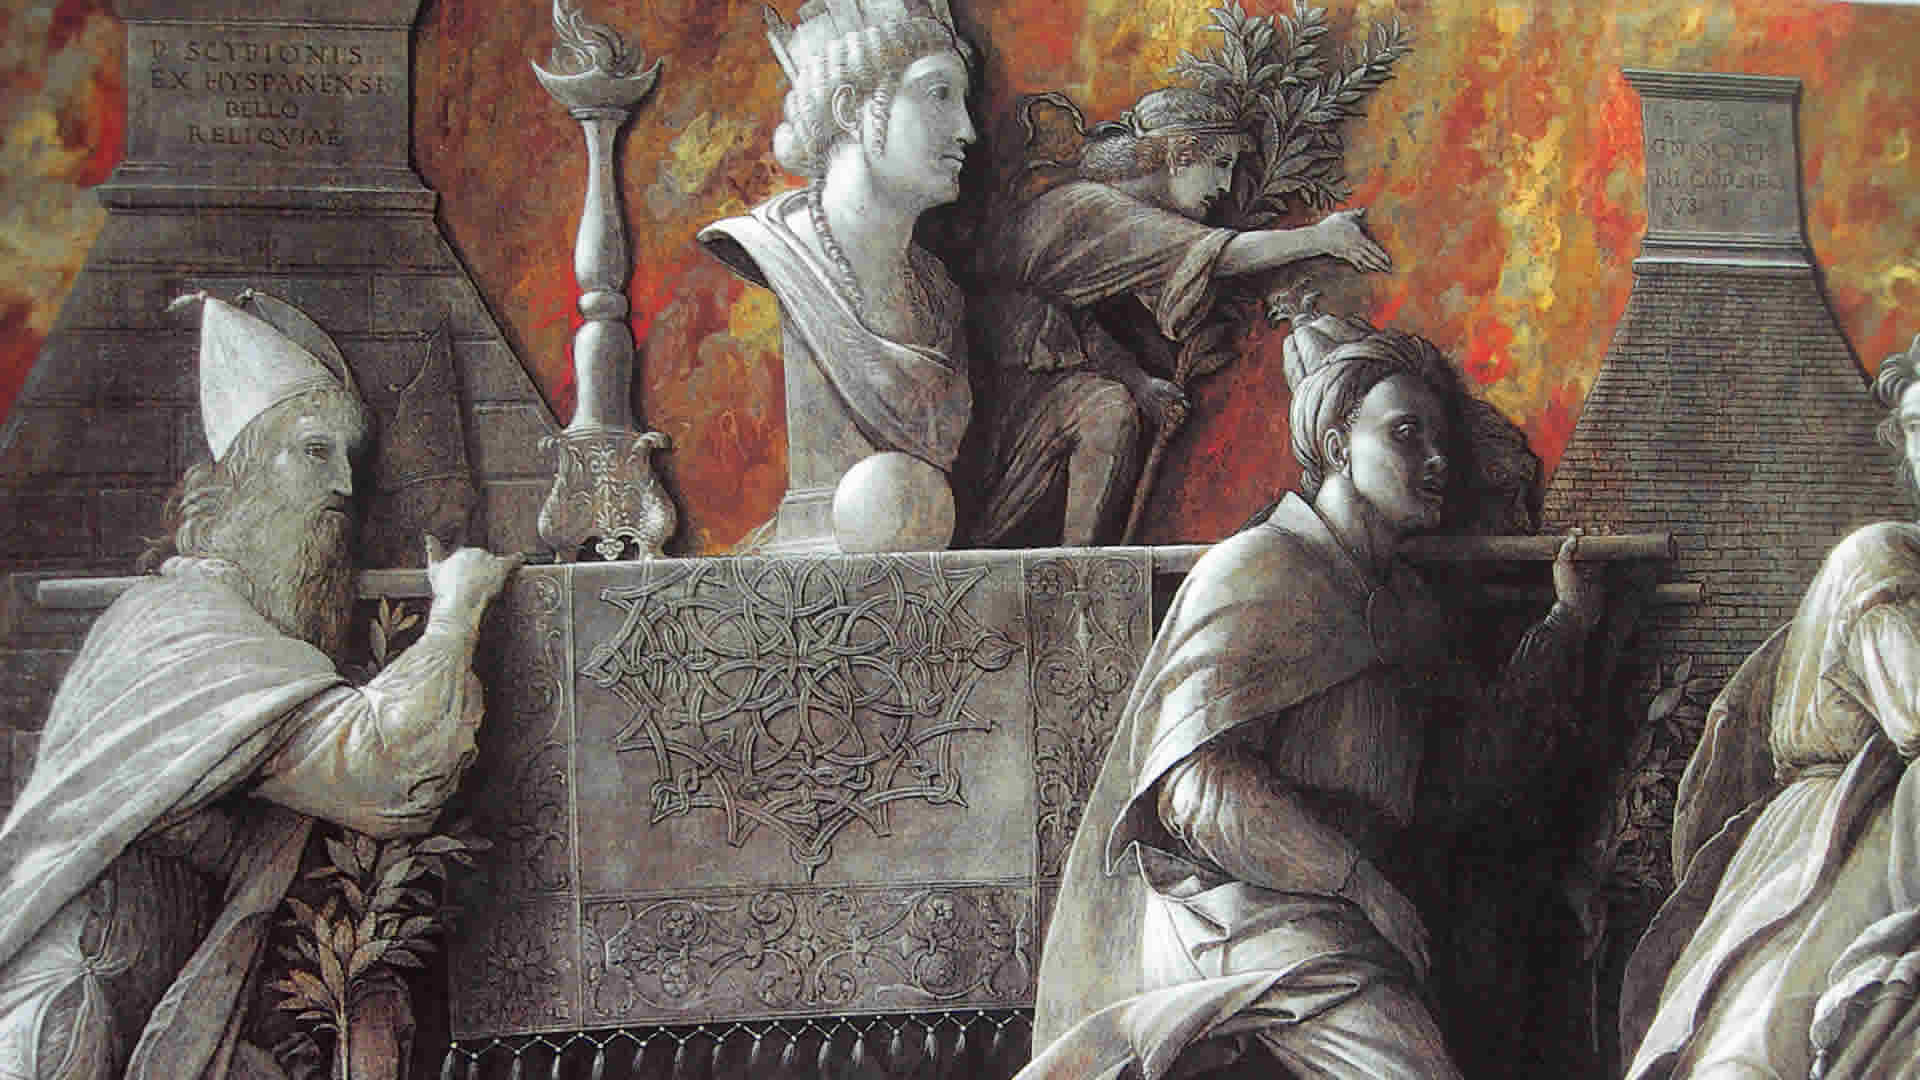 Andrea Mantegna Introduction of the Cult of Cybele at Rome 1505-6 - Detail